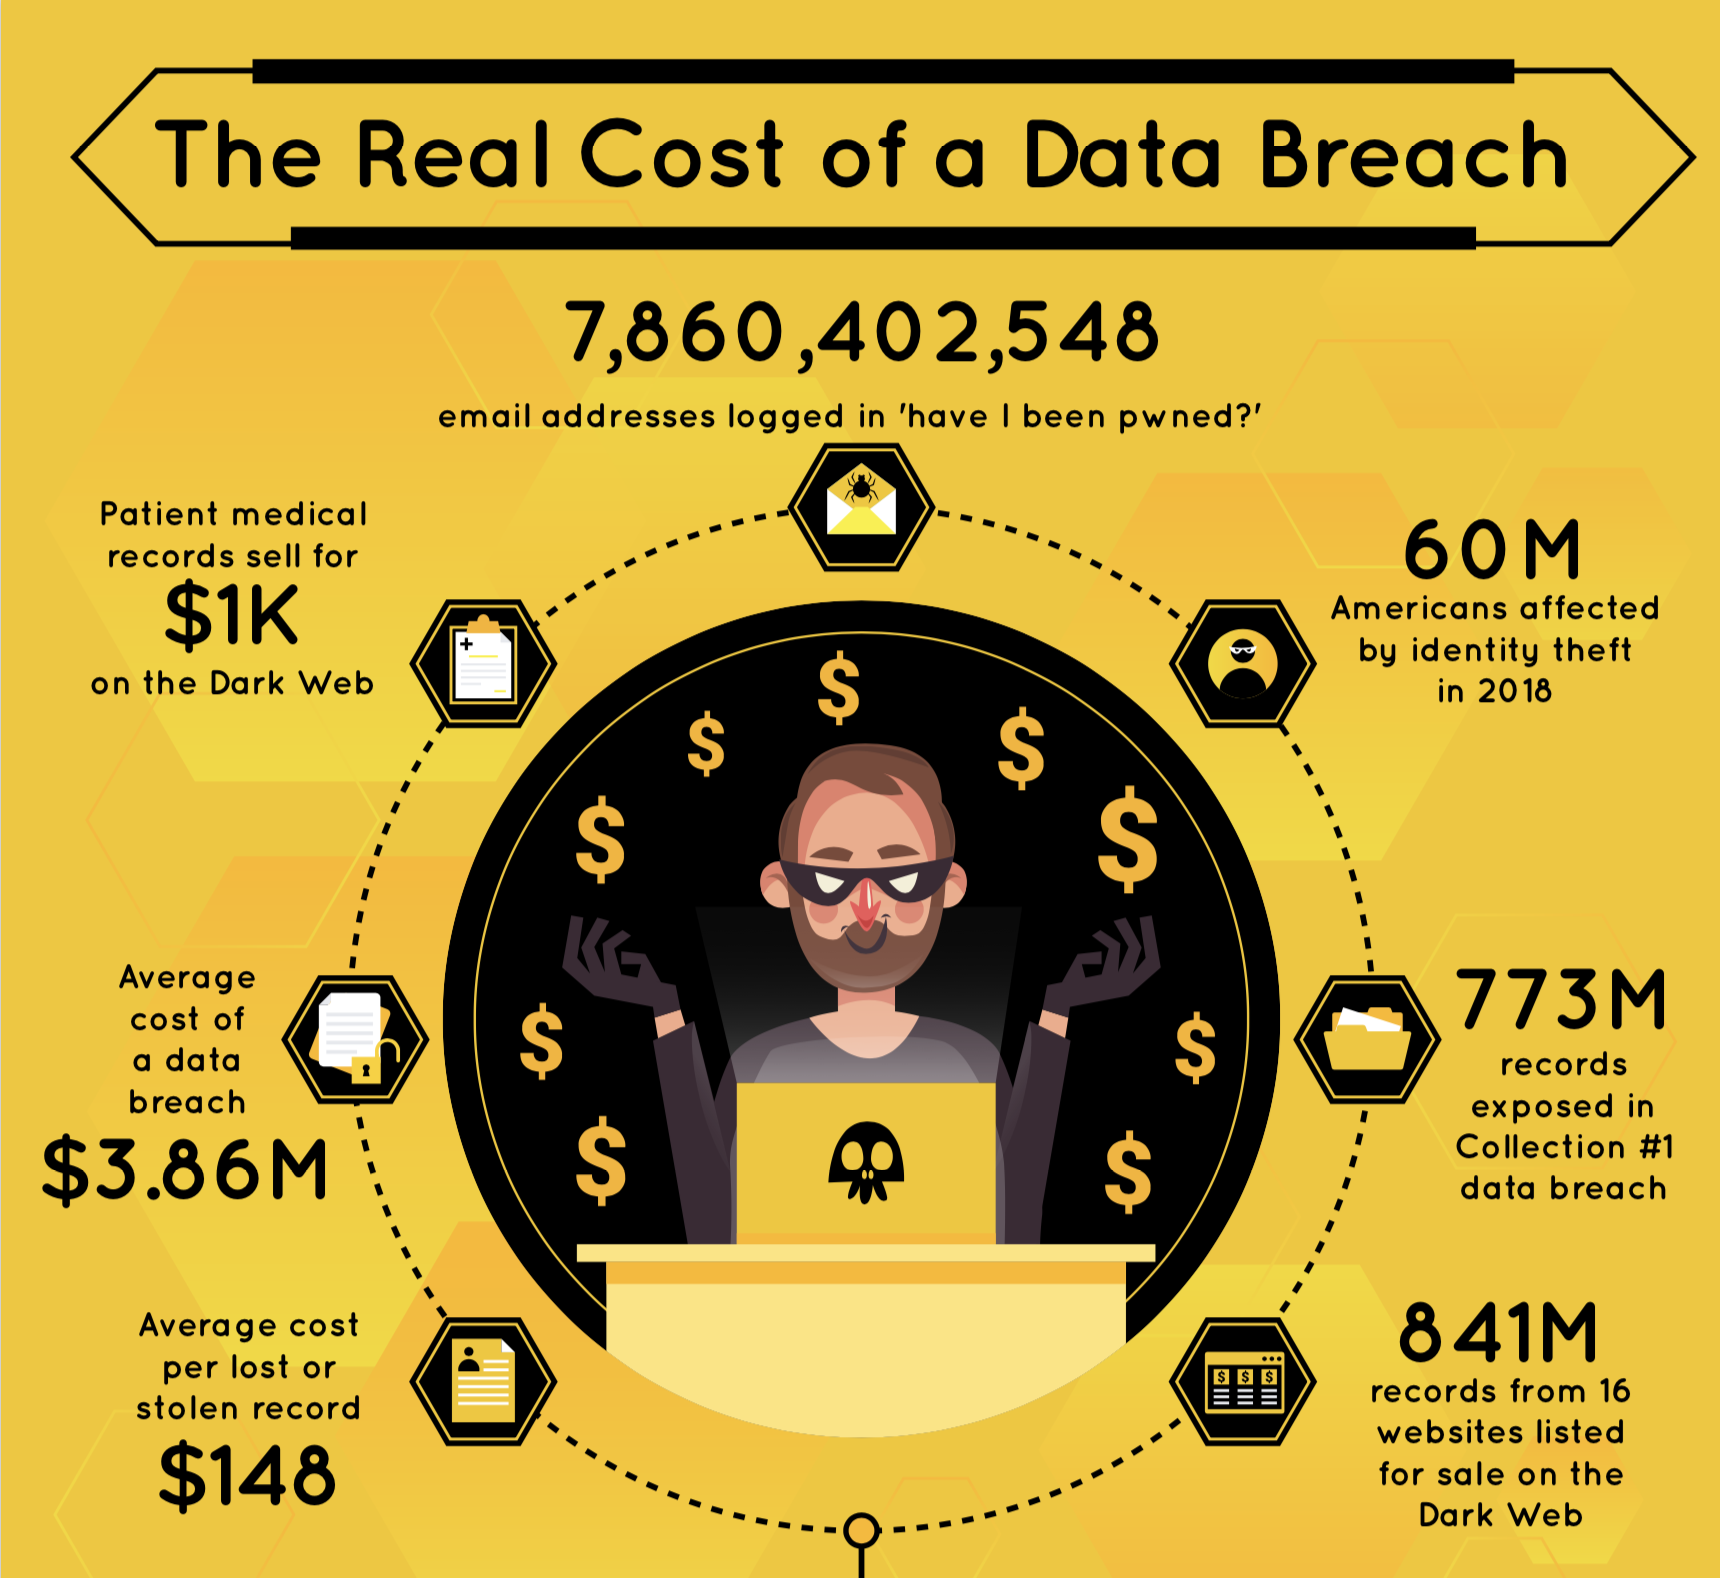 The Real Cost of a Data Breach